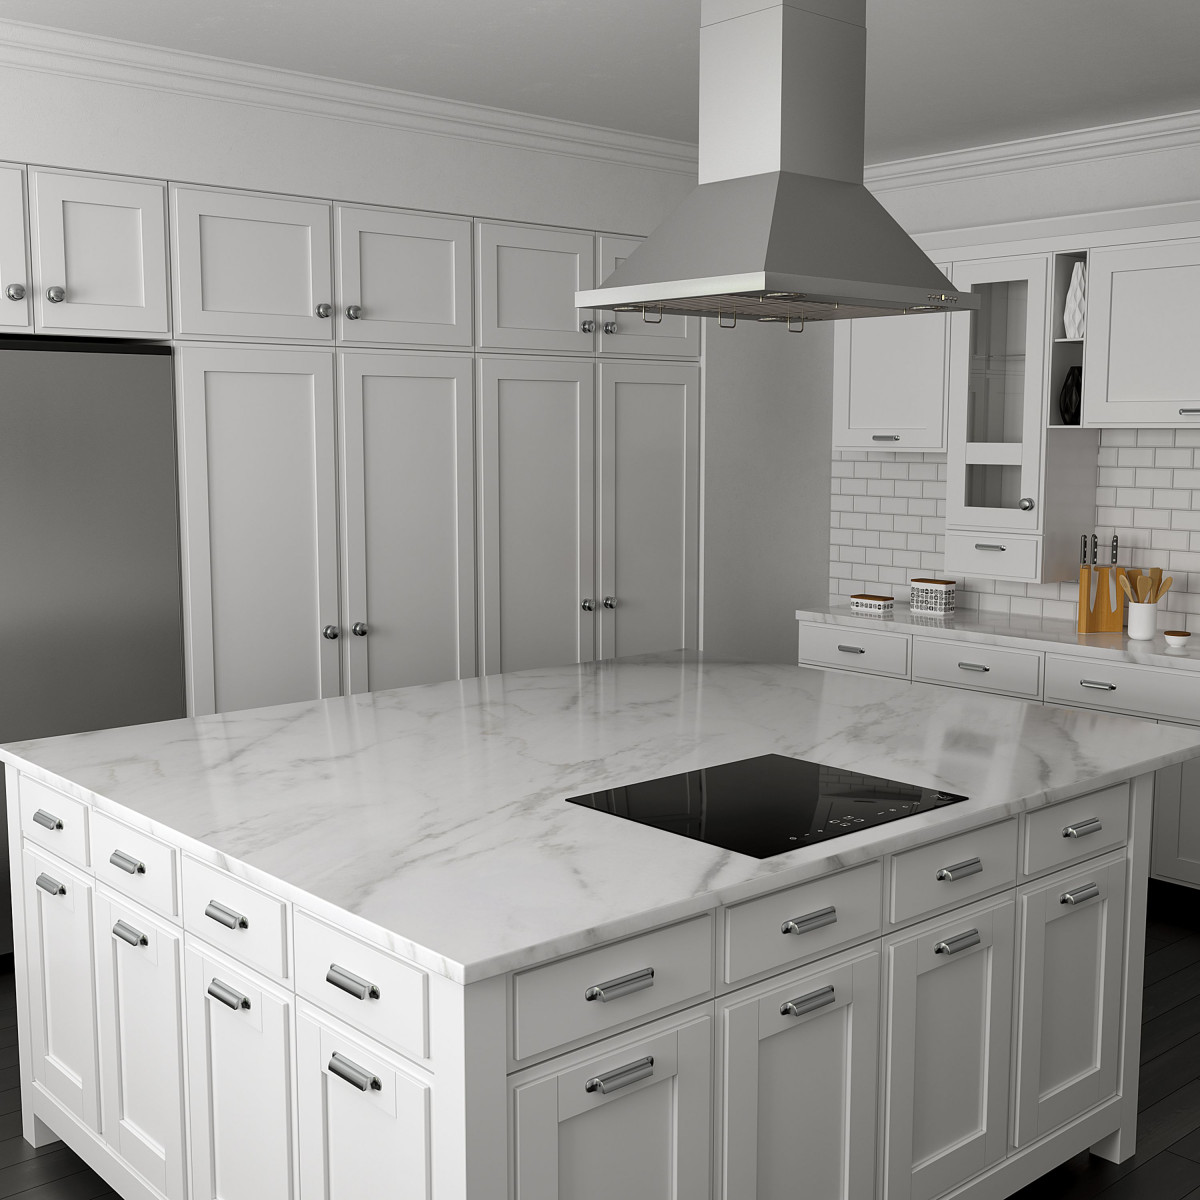 ZLINE induction cooktops in white marble kitchen with island range hood